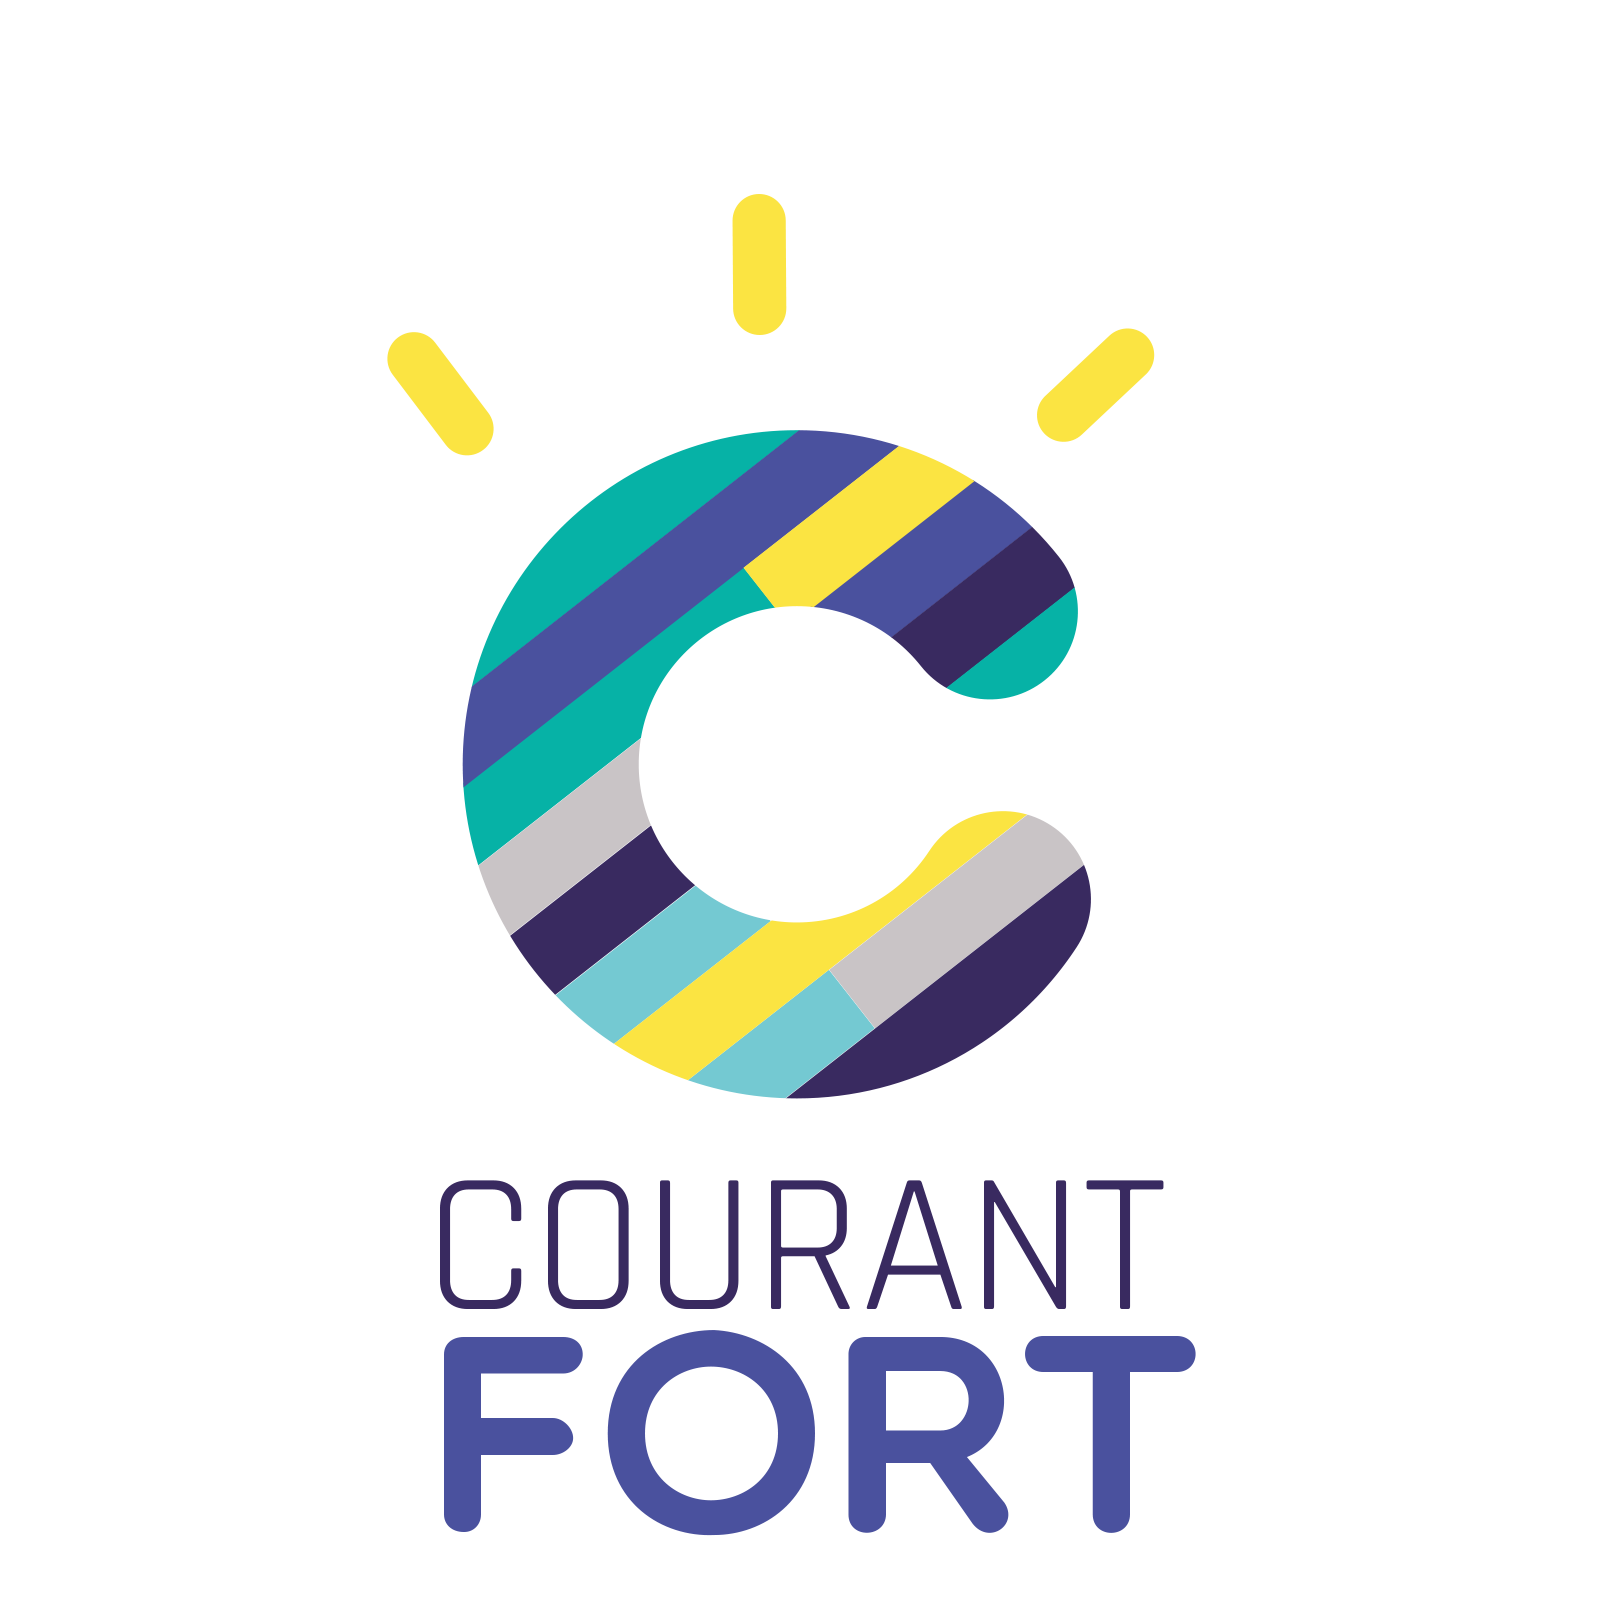 logo COURANT FORT